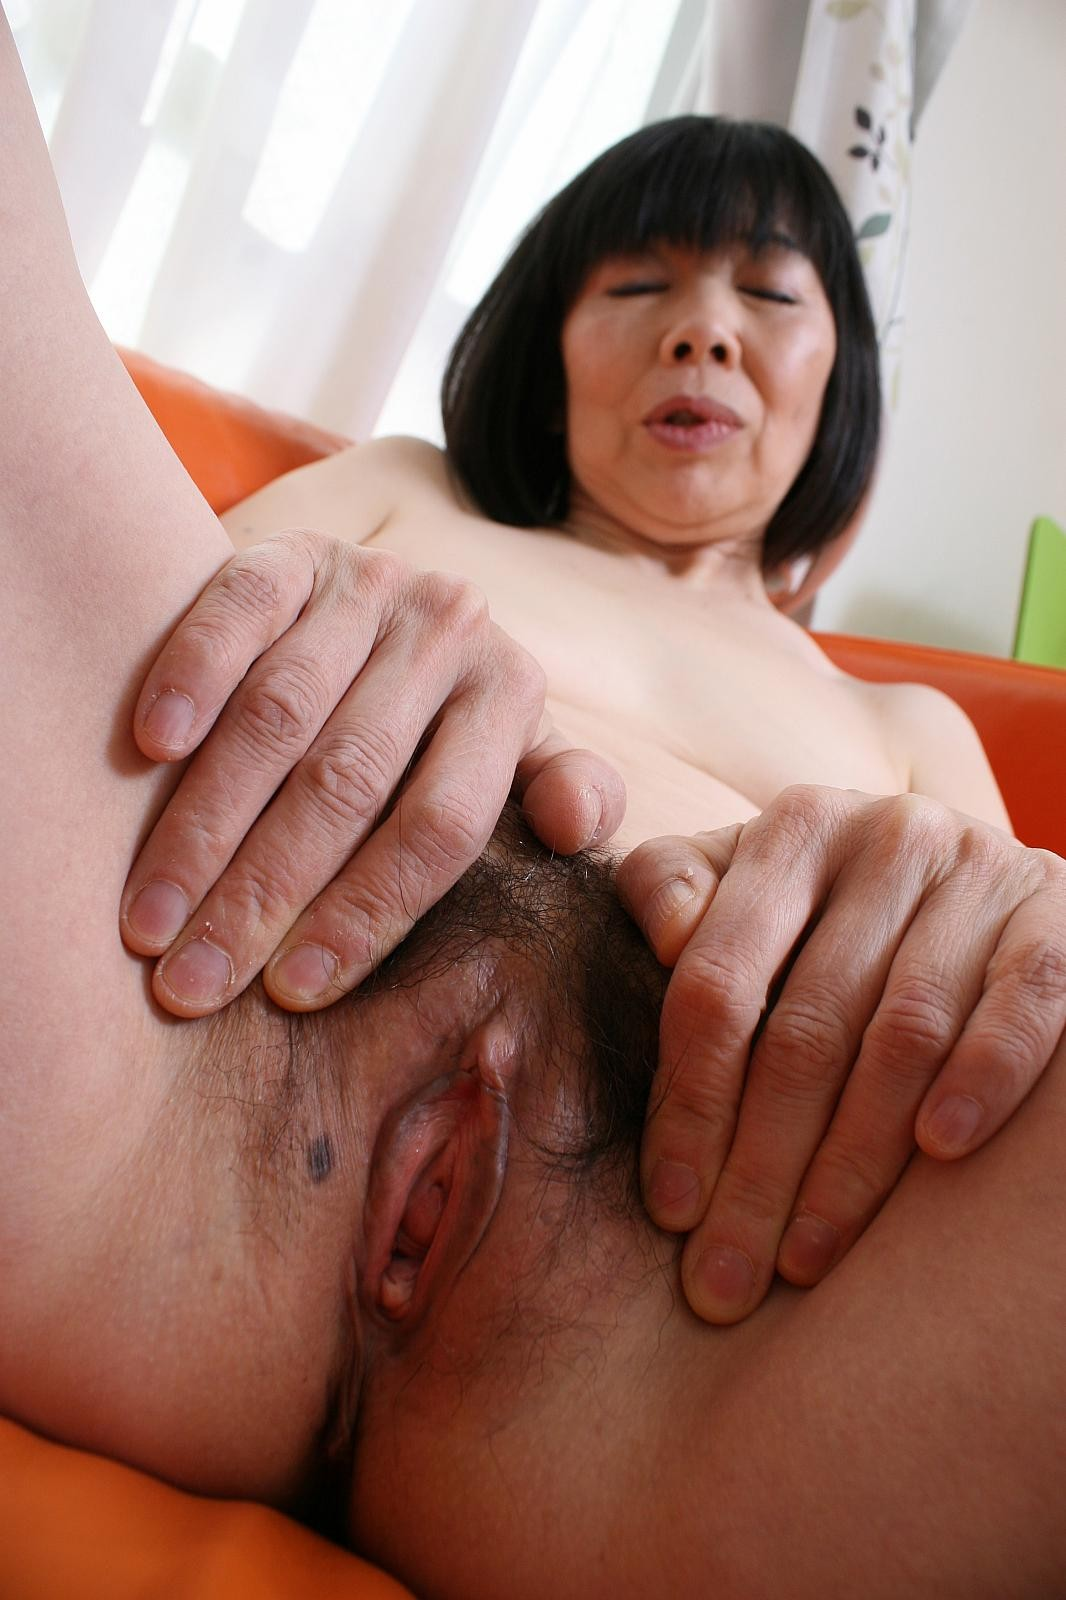 Ancient Chine Torture Porn great men deepthroating chinese woboydy very brutal porn xxx